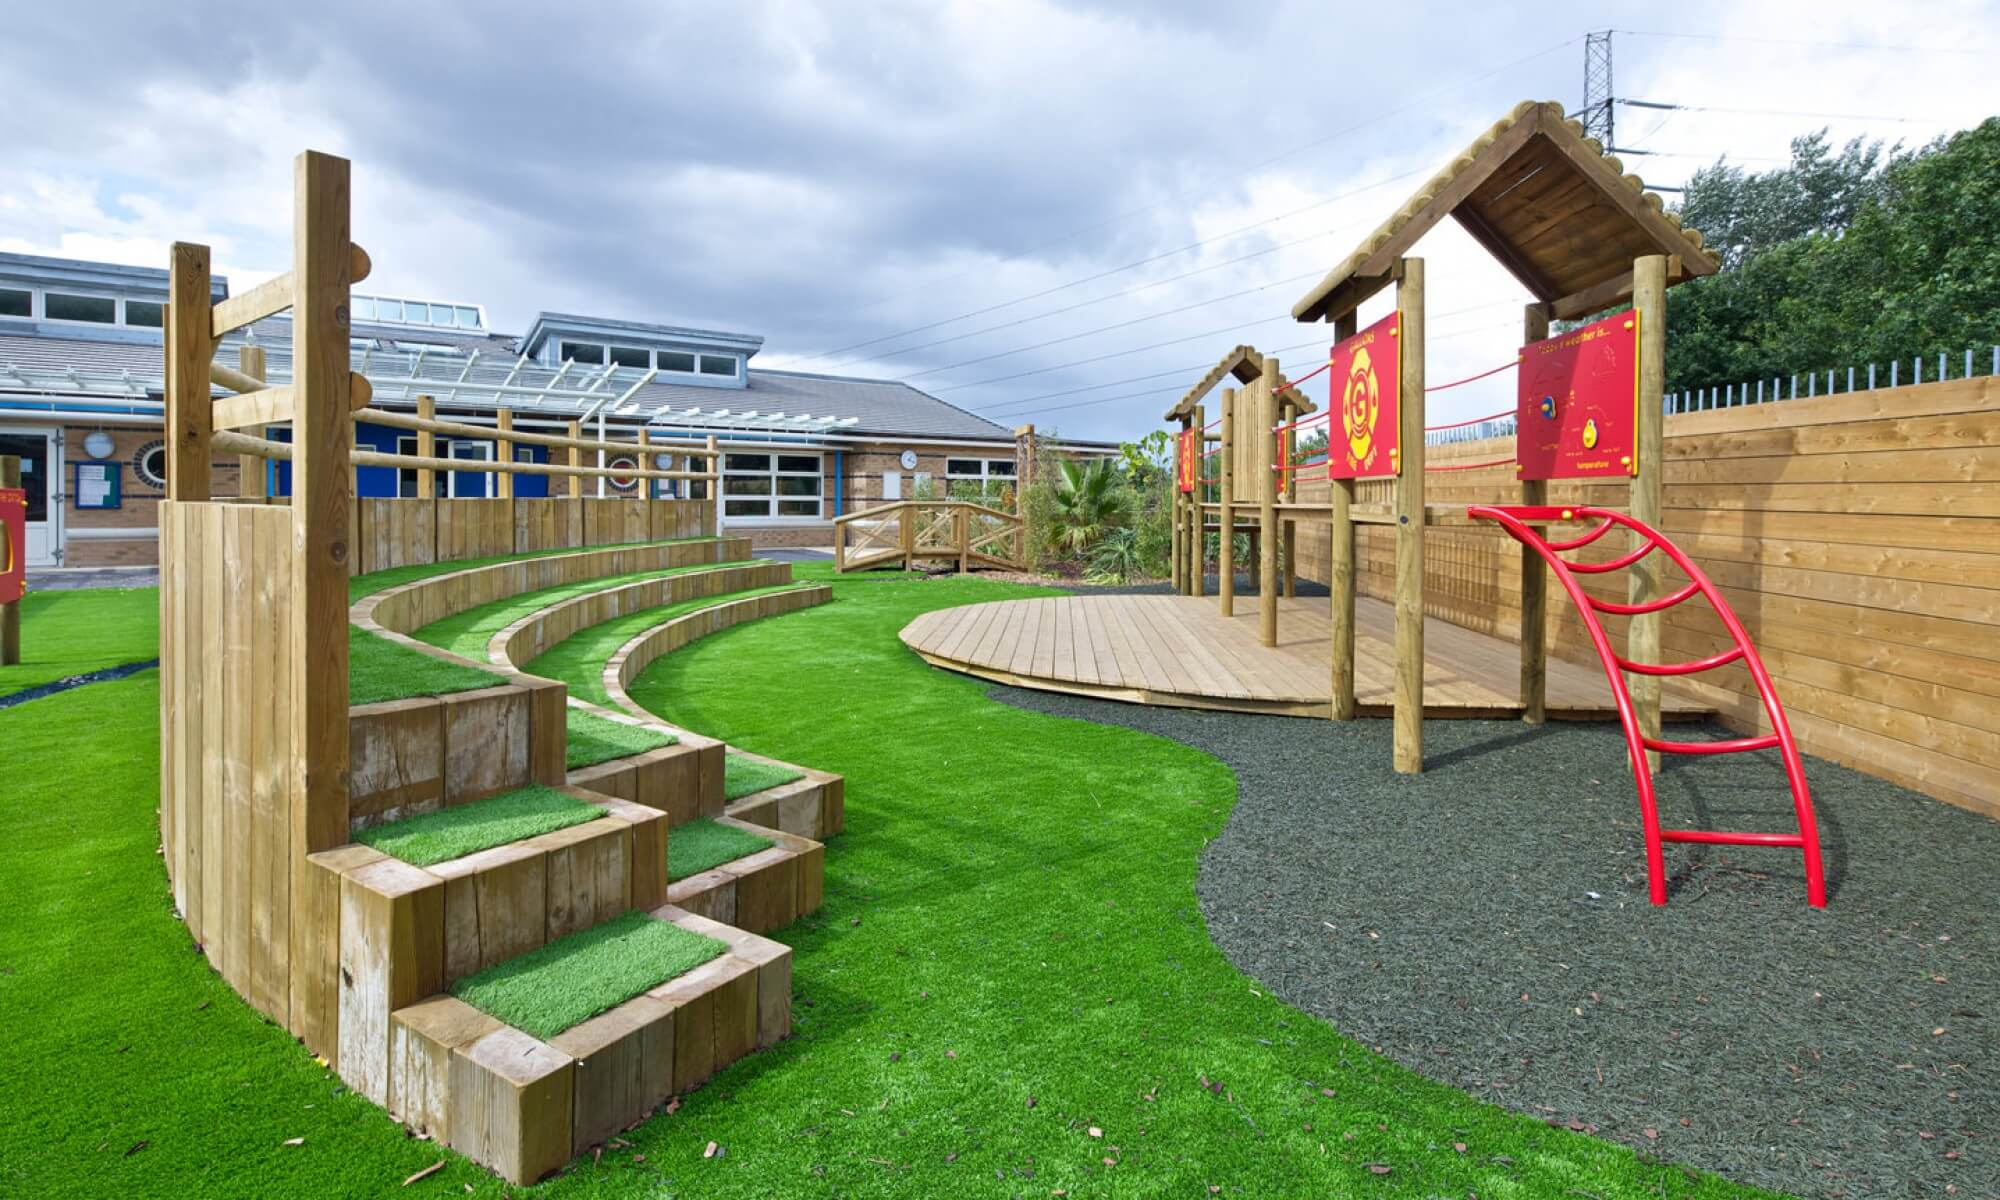 School Playground design & installation at Gallions Primary School in Woolwich, London | Playcubed Playgrounds